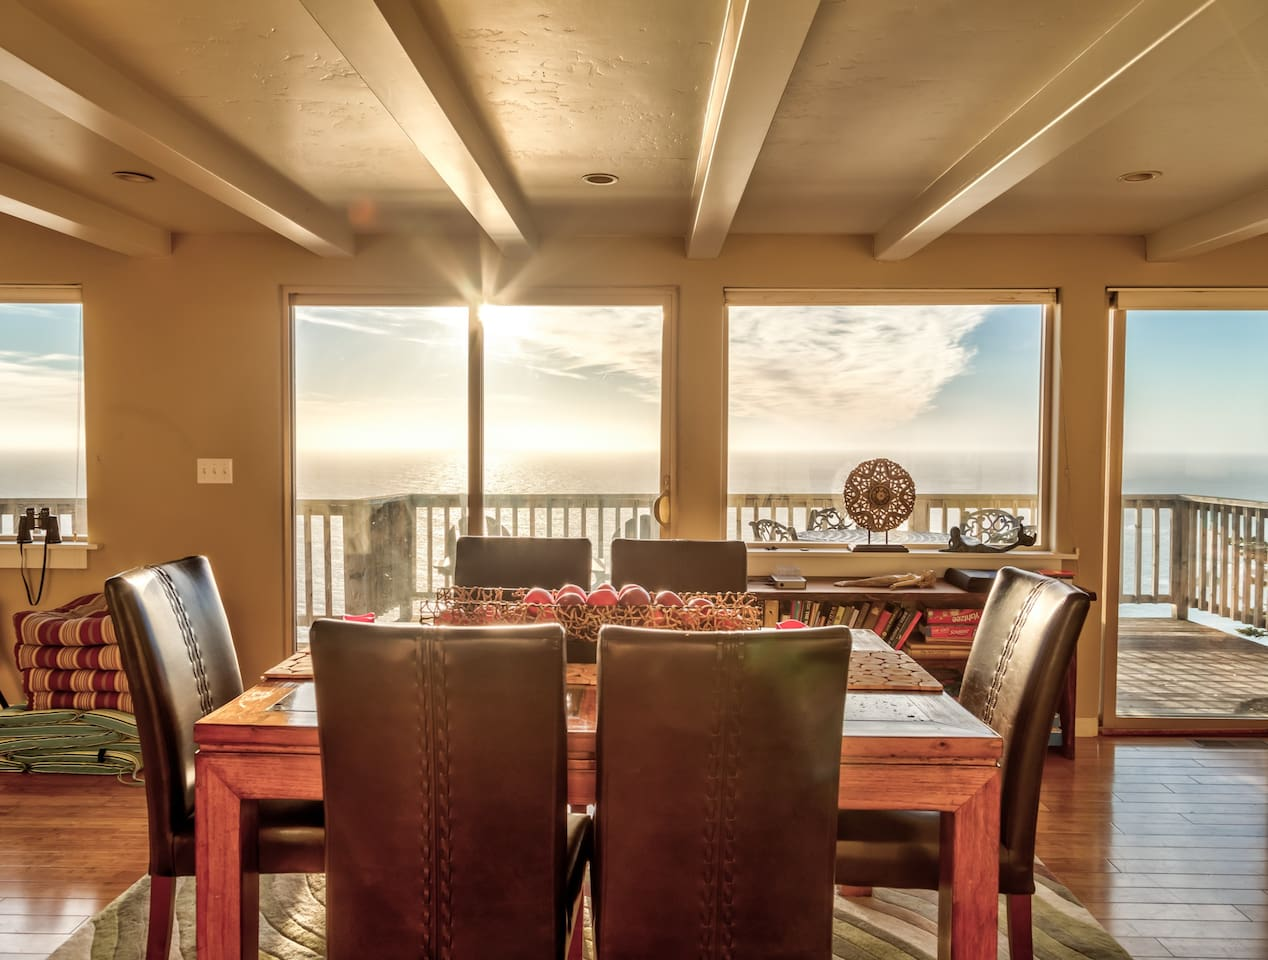 Designer dining room table with spectacular ocean views.  Seats 6.